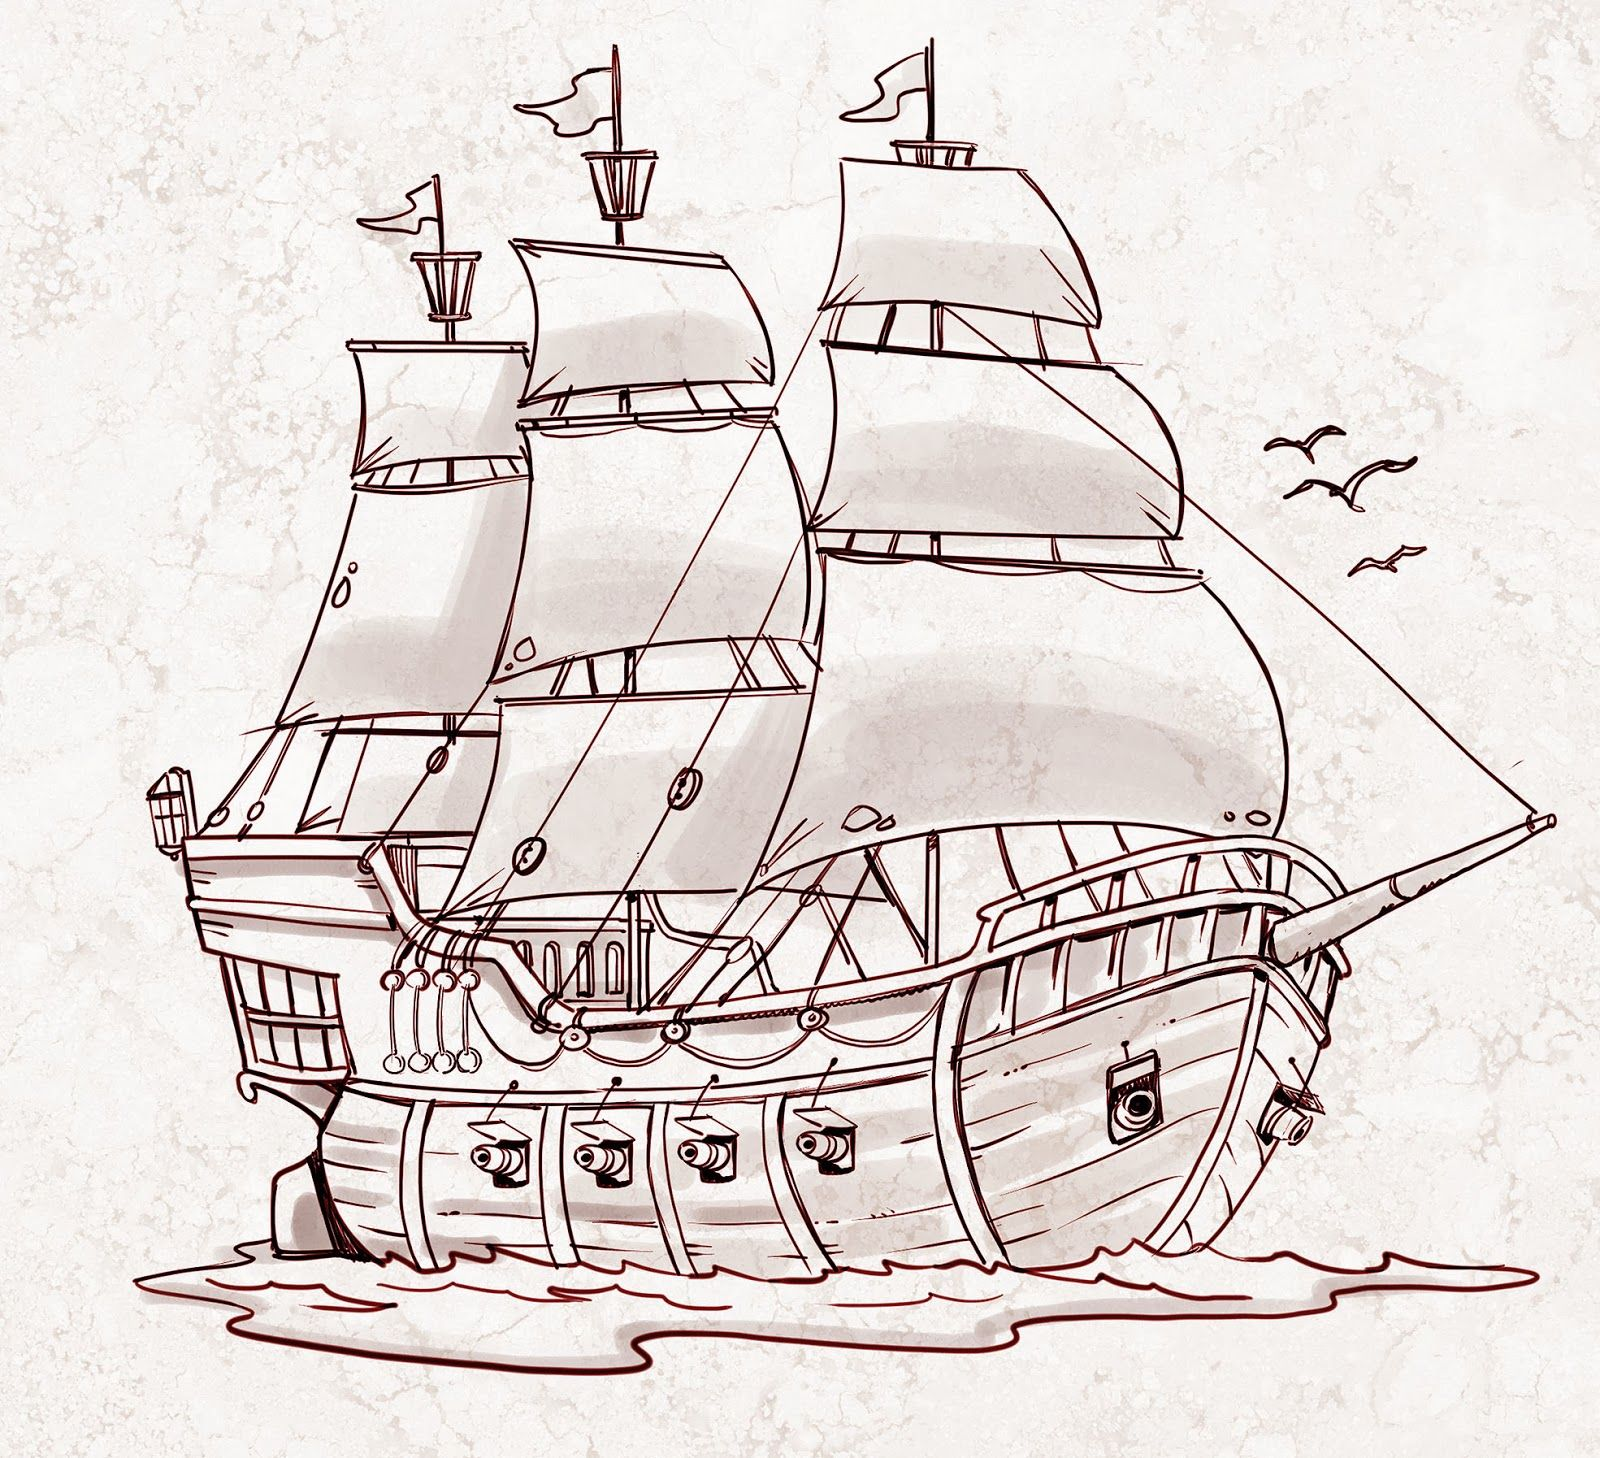 Cartoon Sailing Ship Design Shading Curtain Blackout: Pirate Ship - A Sketch For A How To Draw Book.